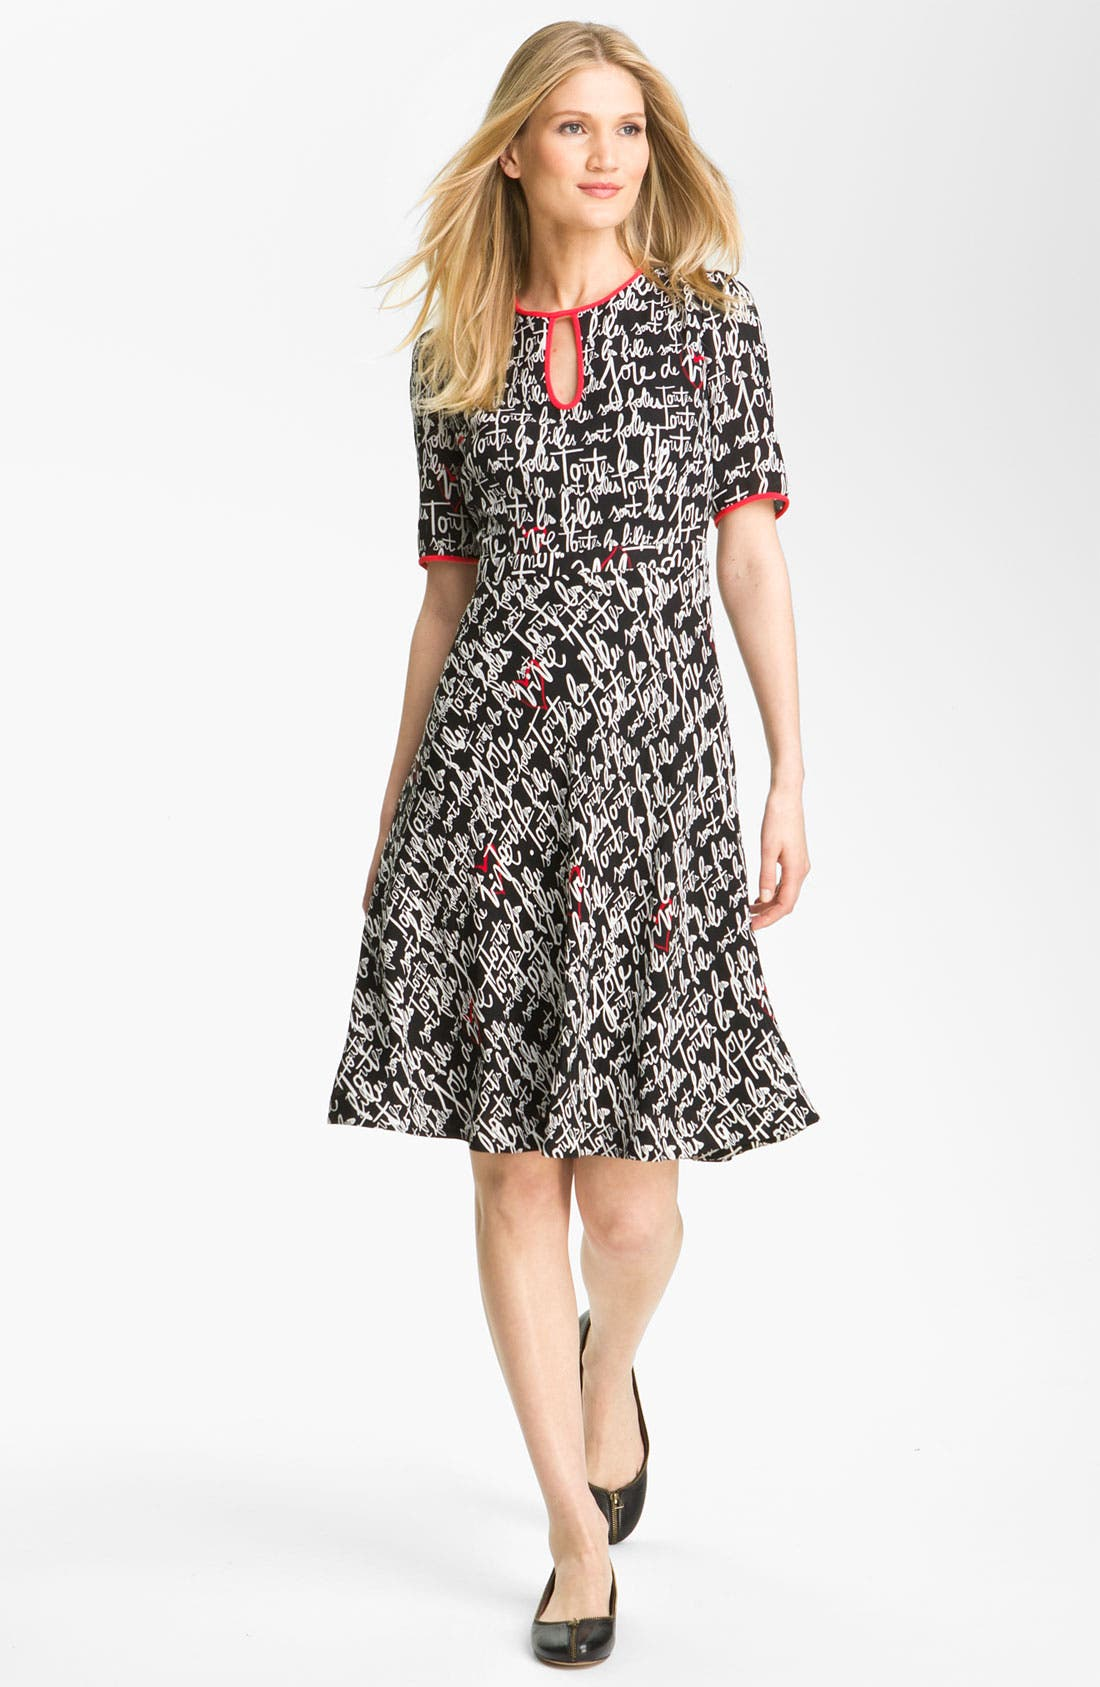 Alternate Image 1 Selected - kate spade new york dress & accessories